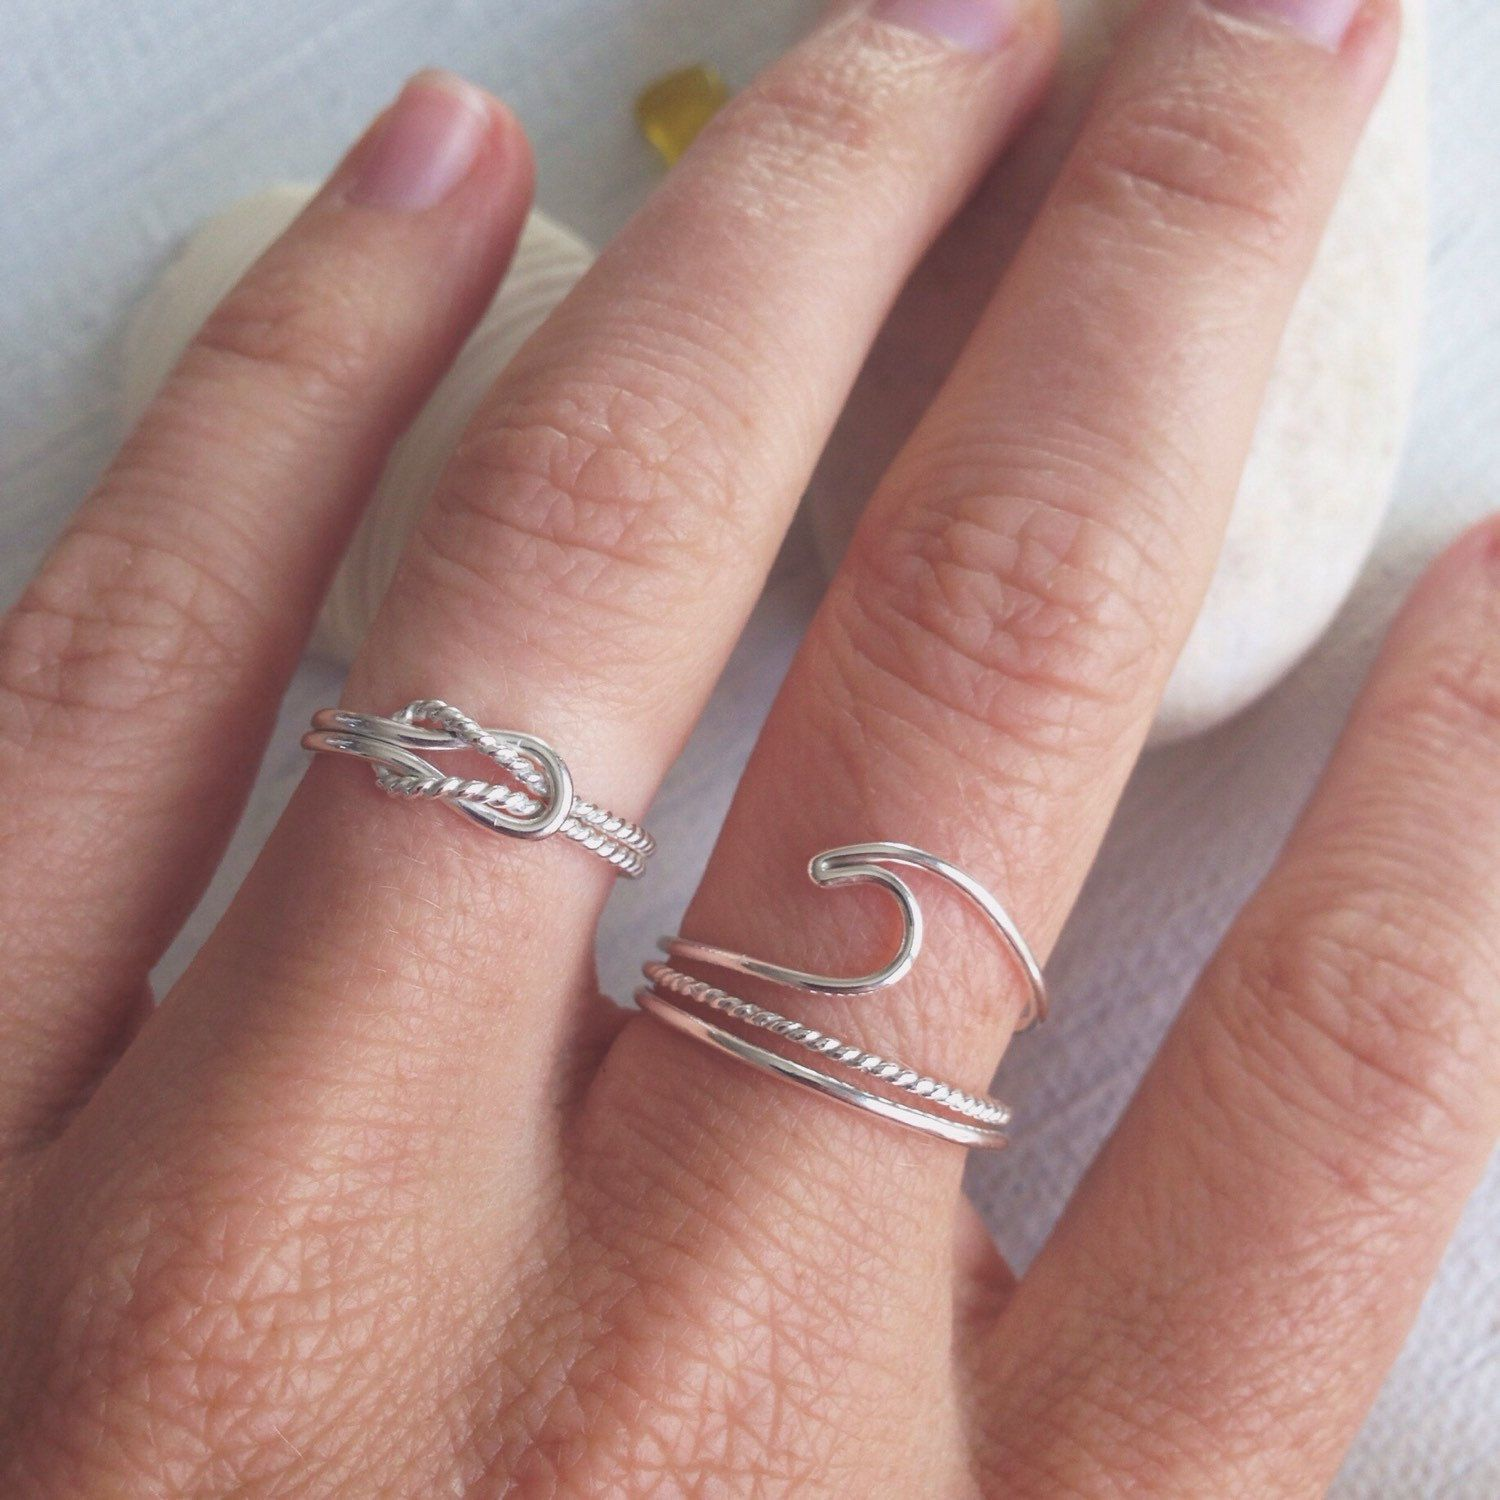 Knot Ring - SQUARE KNOT - Infinity Ring - Knotted Sterling Silver ...